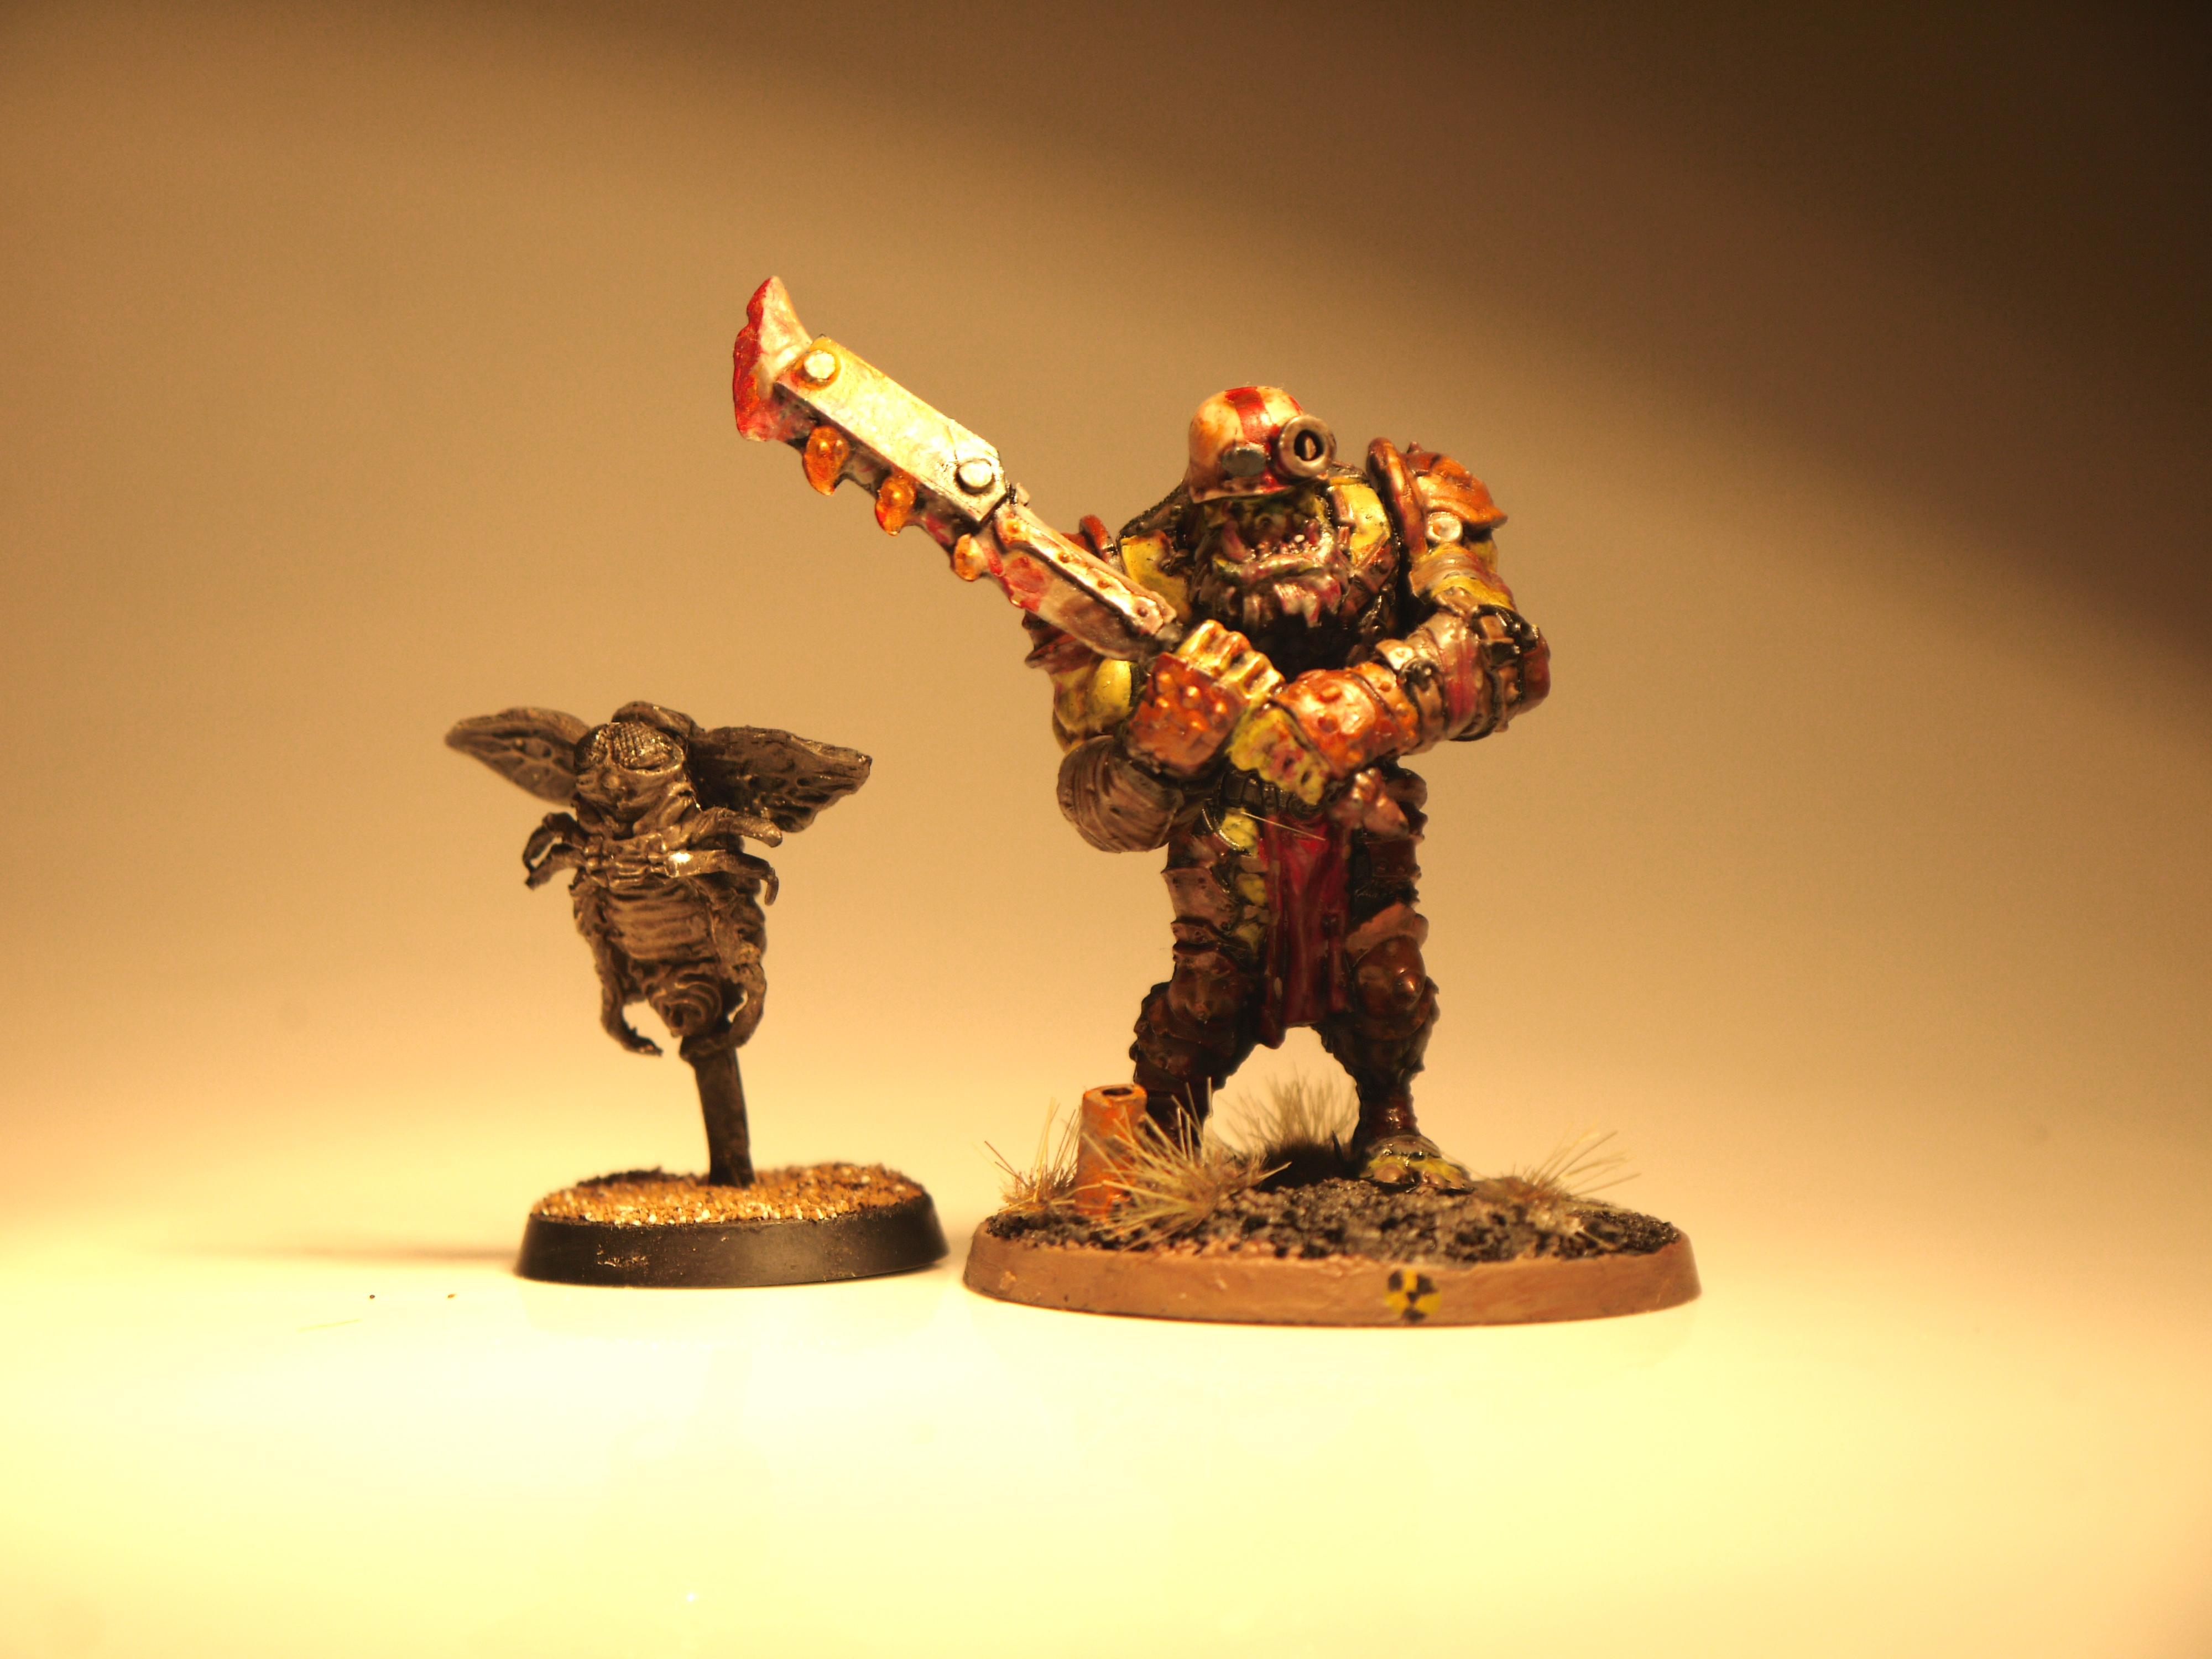 Black Cat Bases, Bug, Fallout, Fallout. Post Apocalyptic, Insect, Mantic Games, Mutant, Ogres, Post Apocalyptic, Post-apocalyptic, Rust, Soldier, Sword